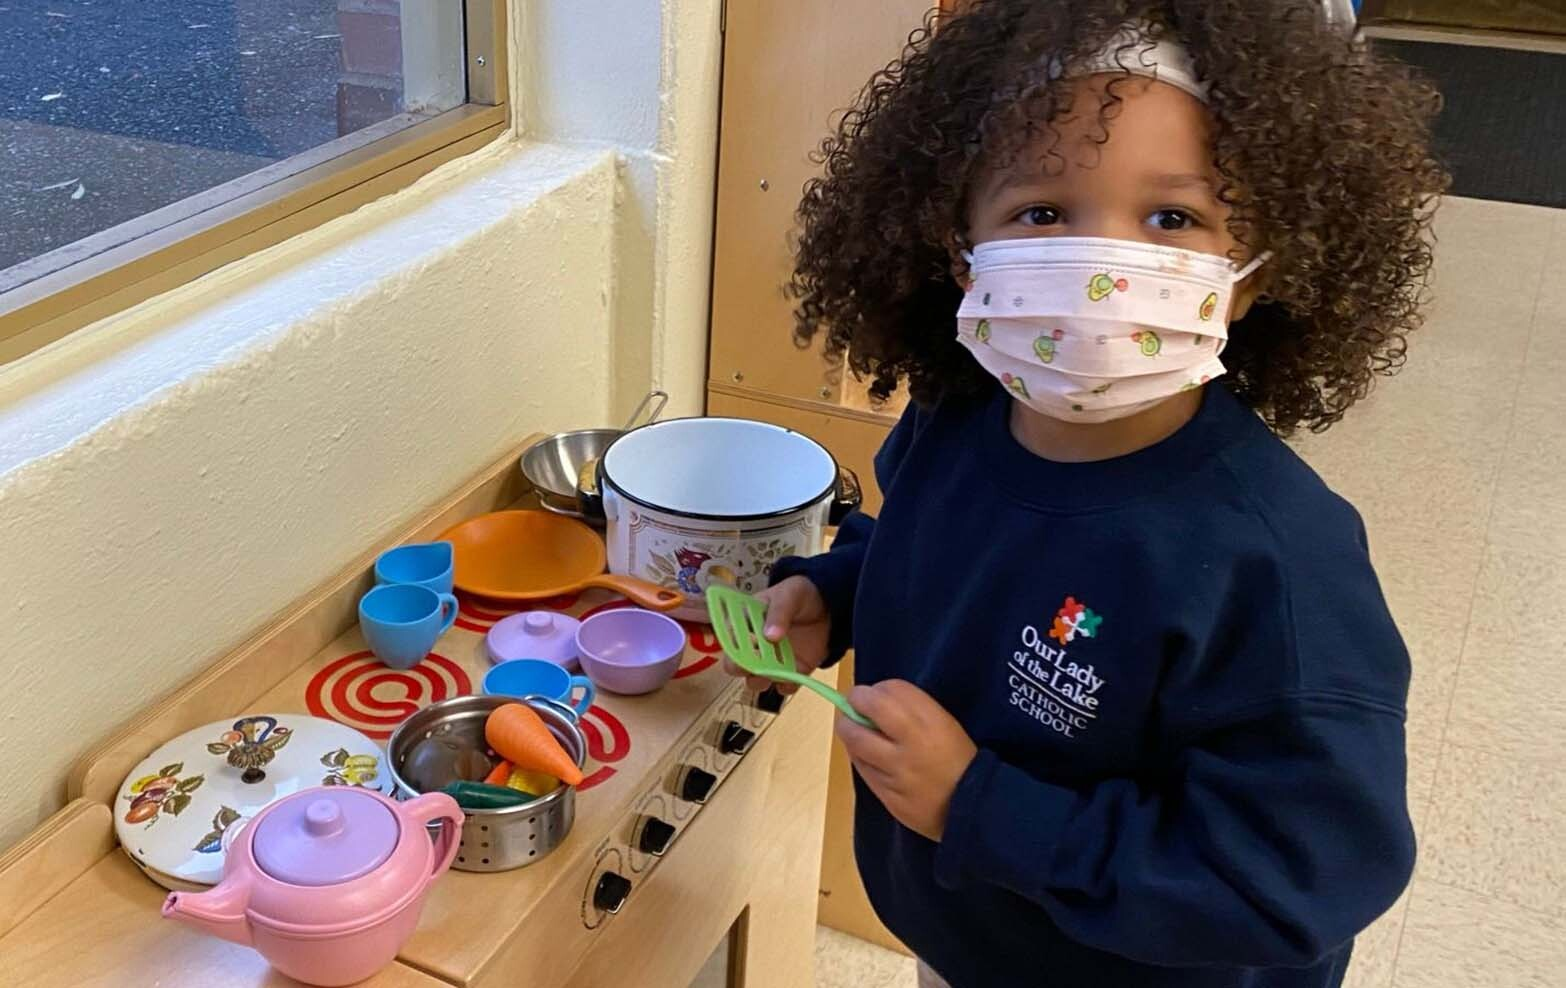 Preschool student in a play kitchen